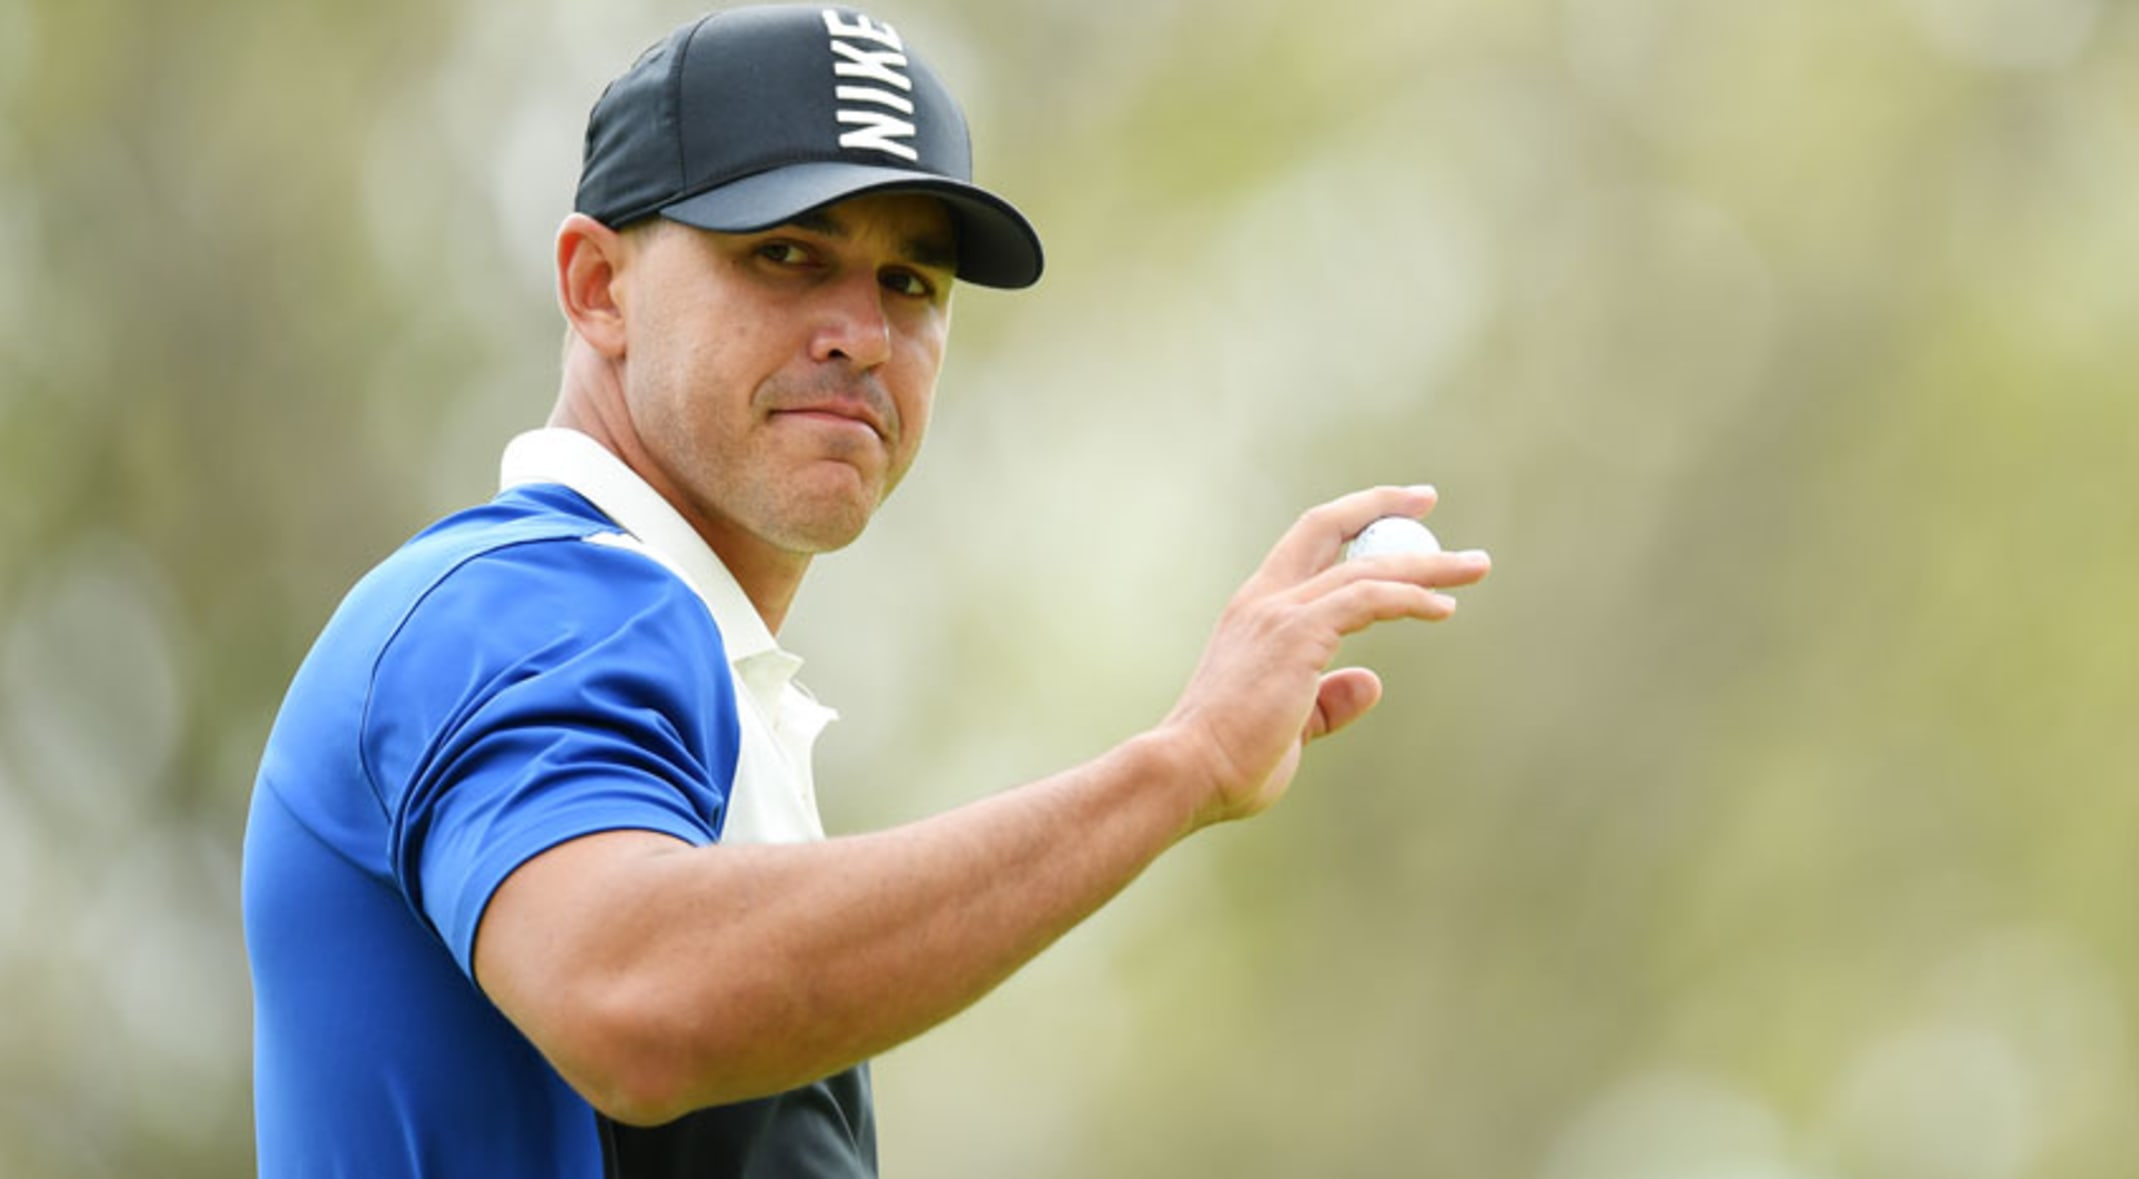 Image result for players championship Koepka